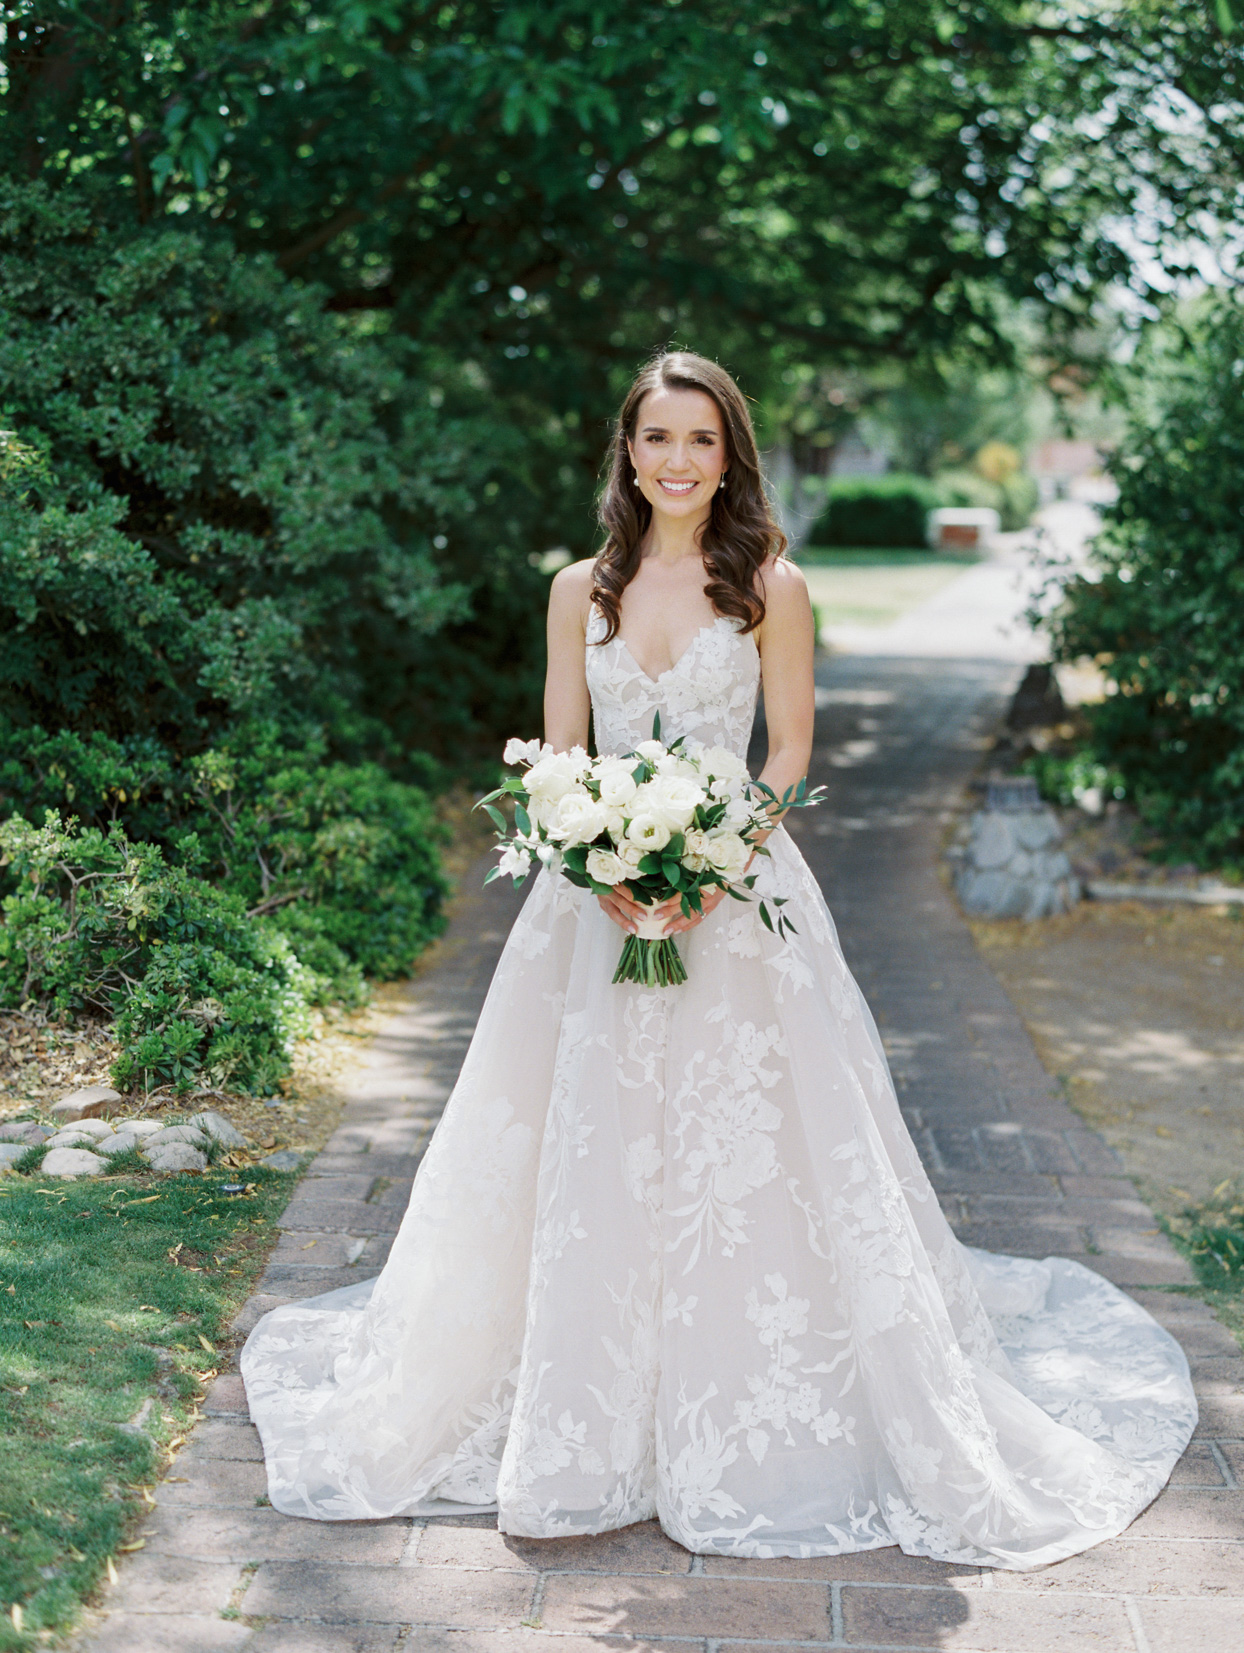 bride smiling wearing a-line dress holding white rose floral bouquet